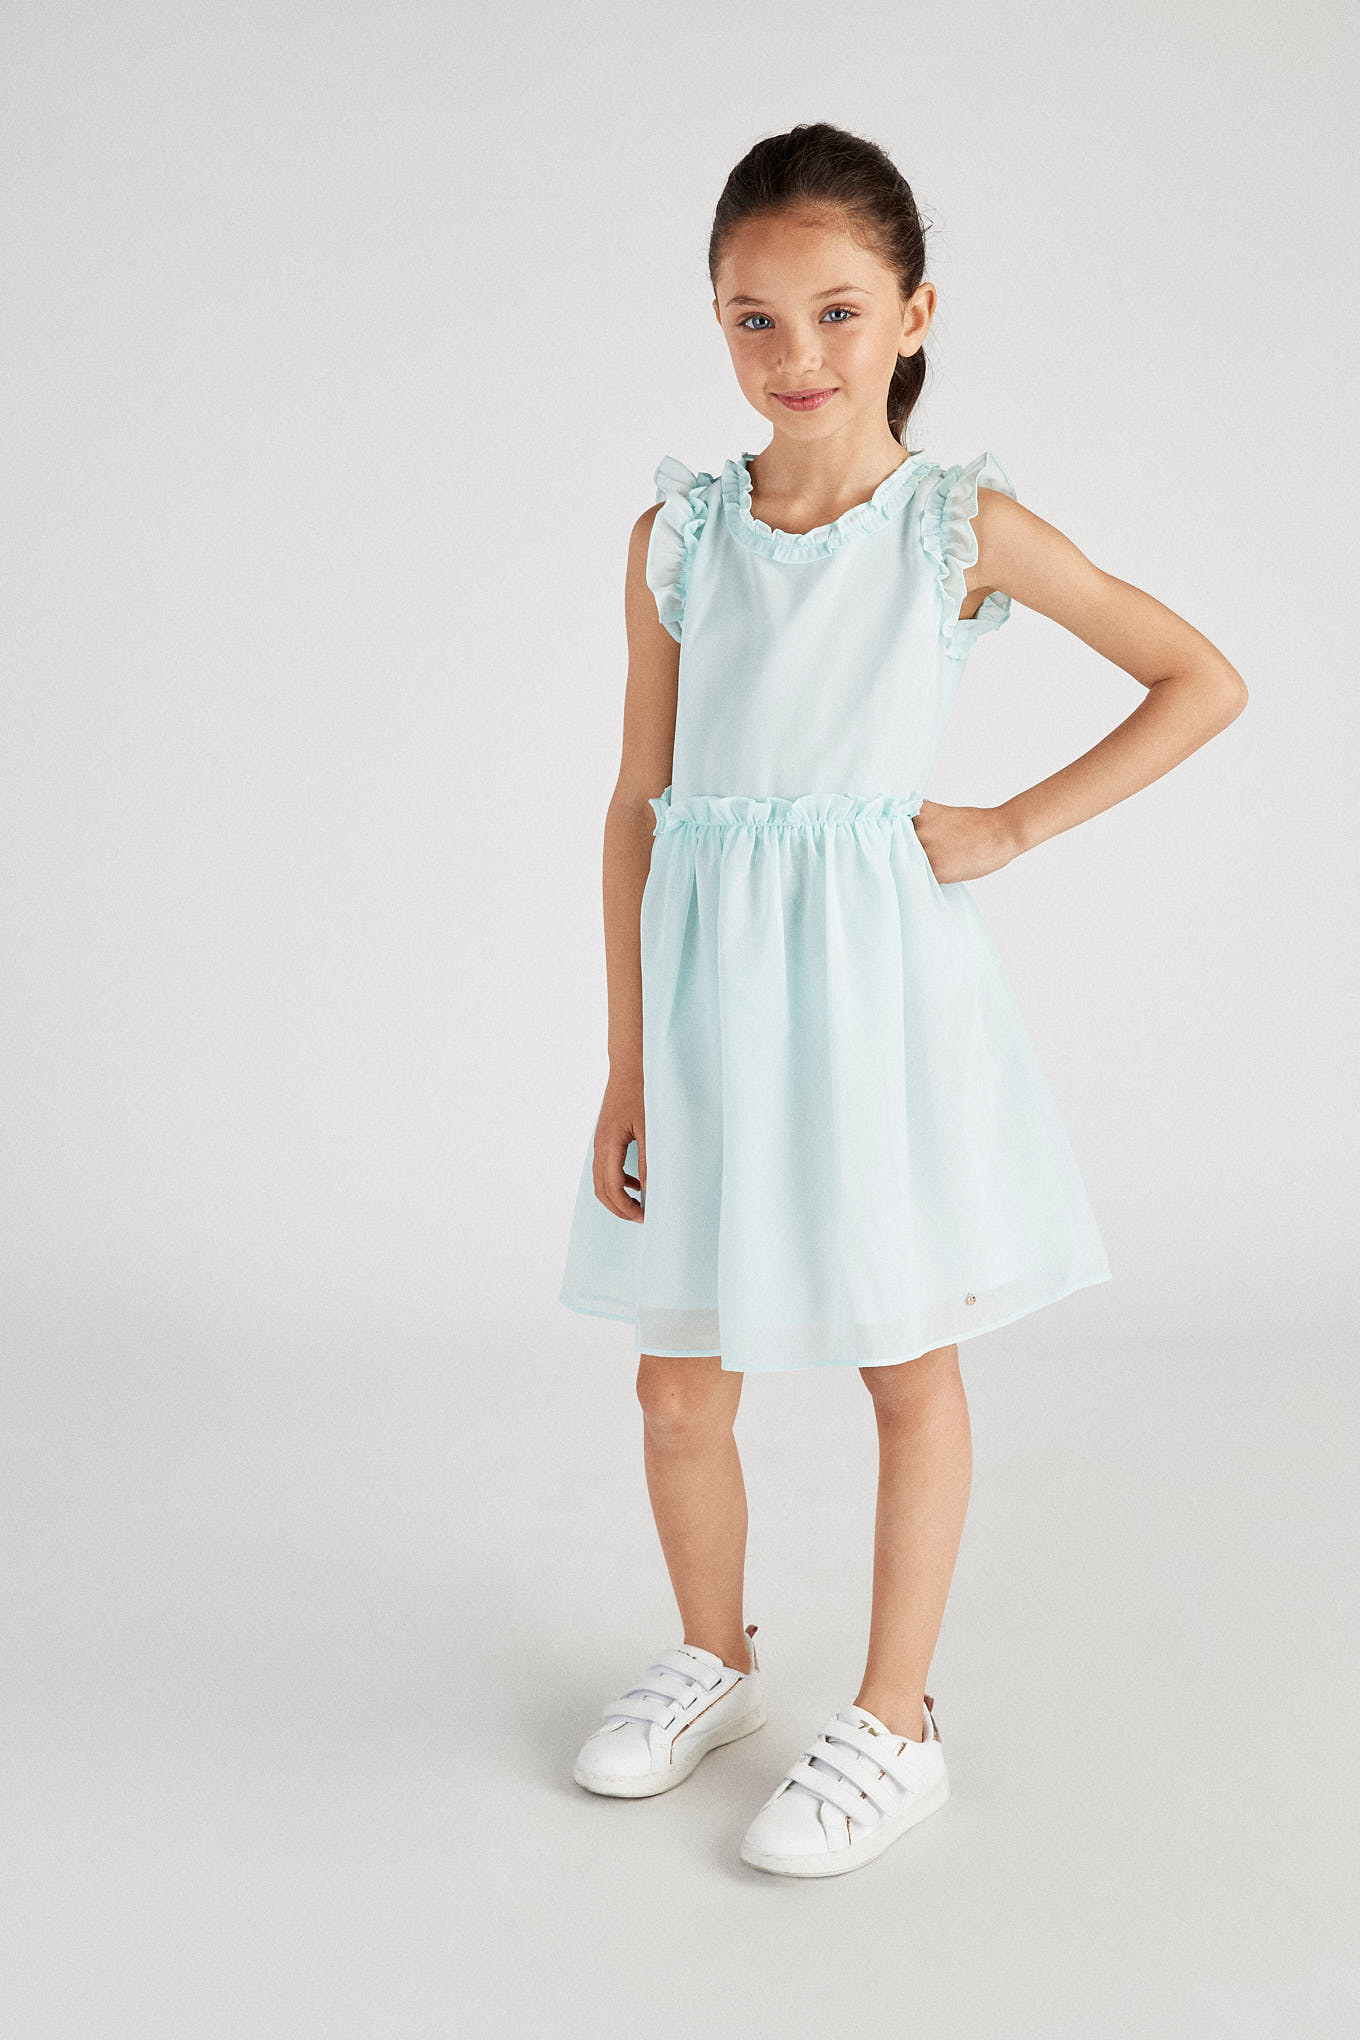 Dress Aqua Fantasy Girl